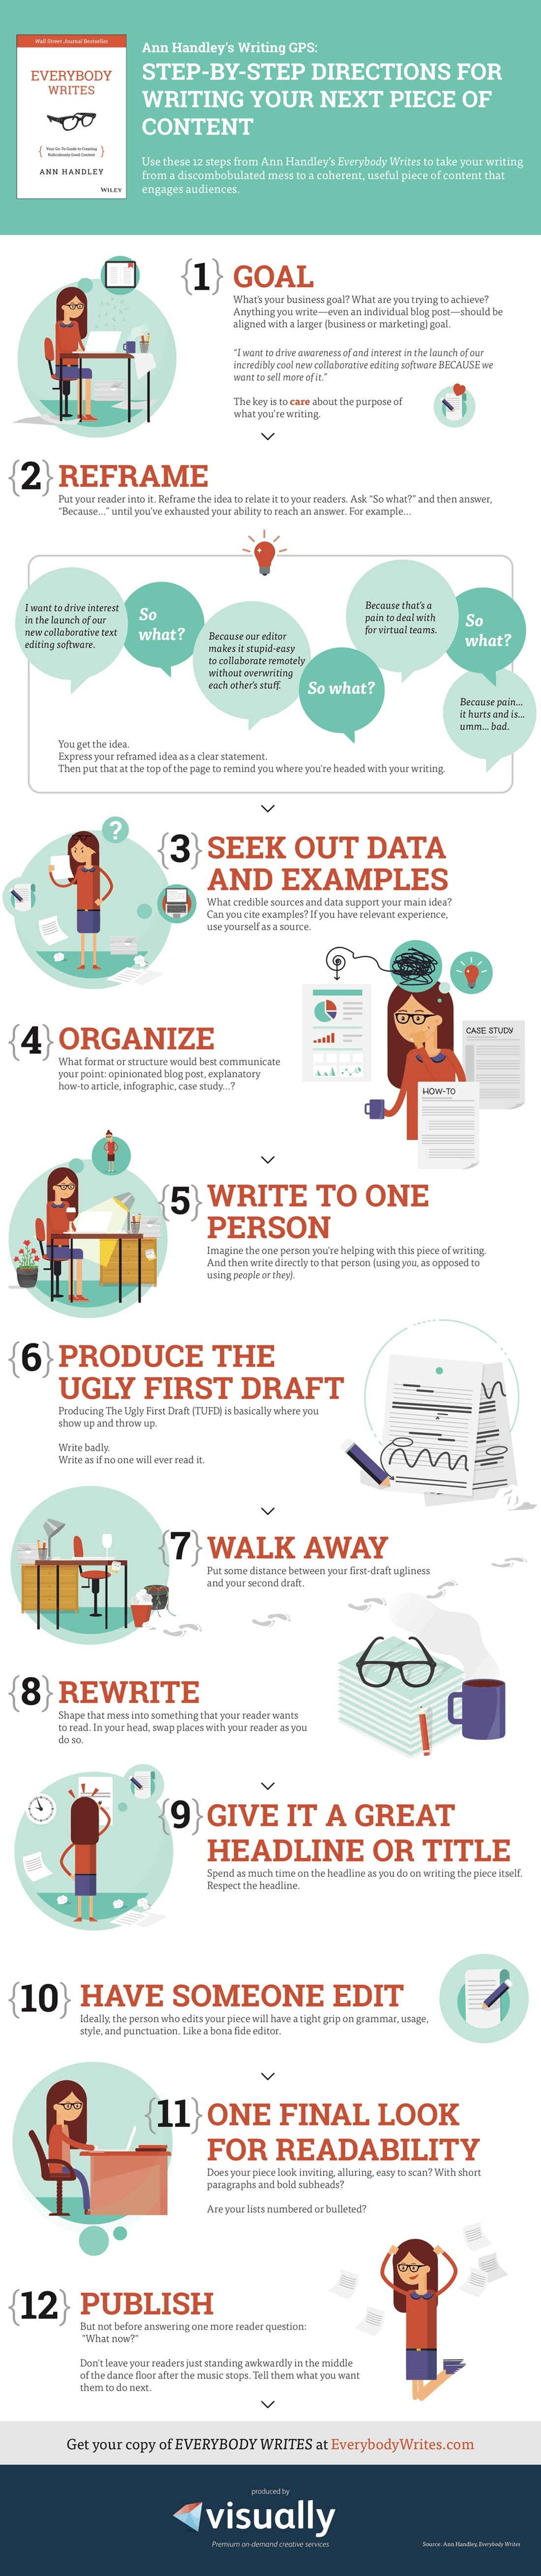 content-writing-infographic